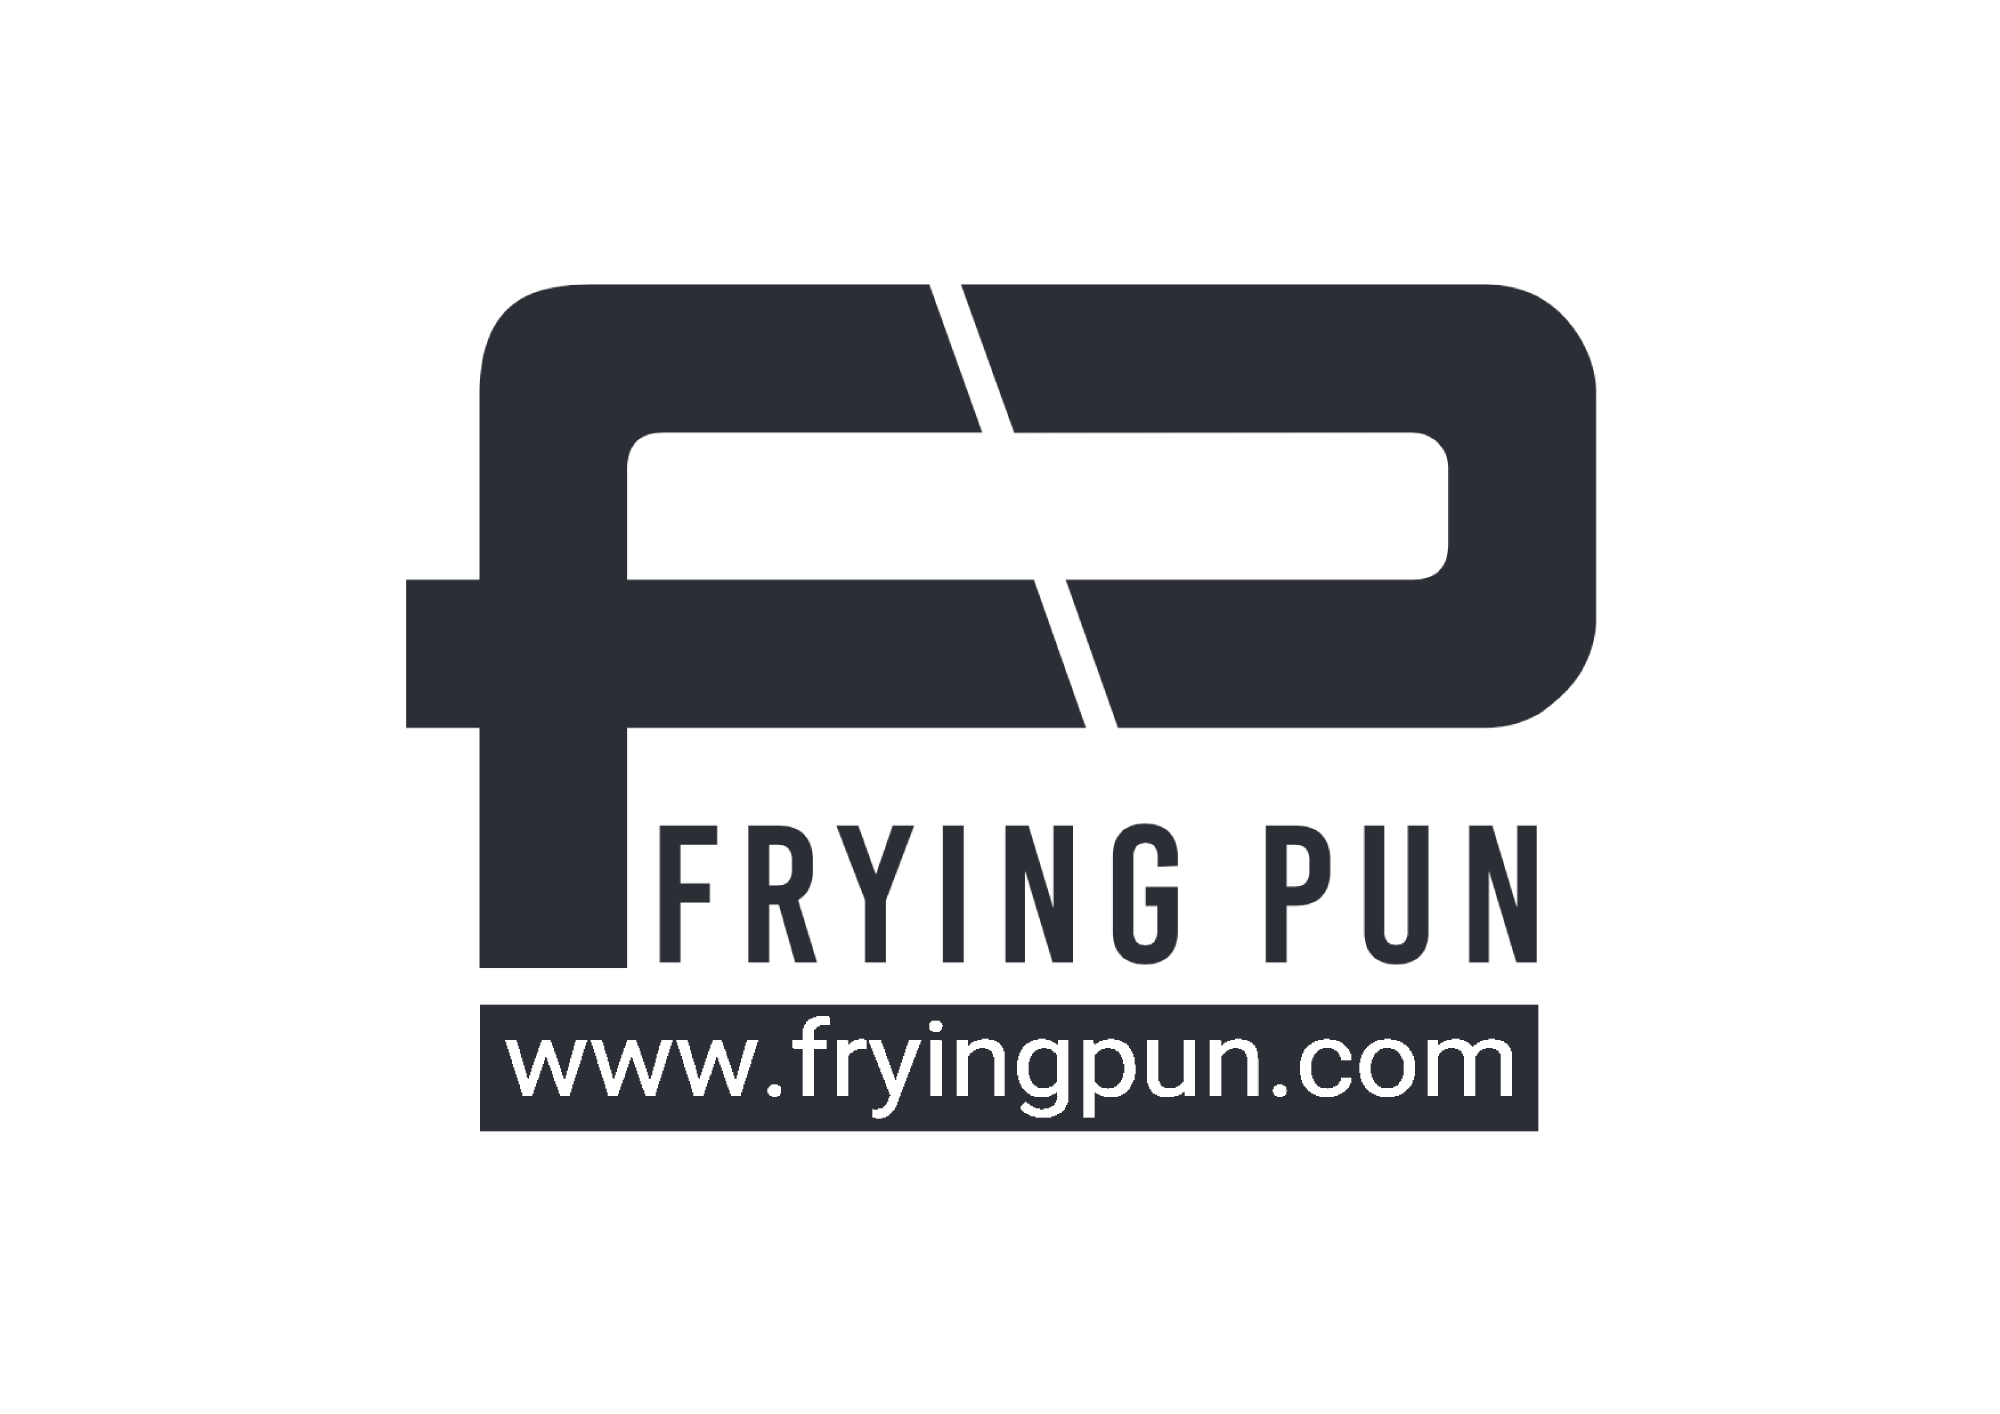 Frying Pun